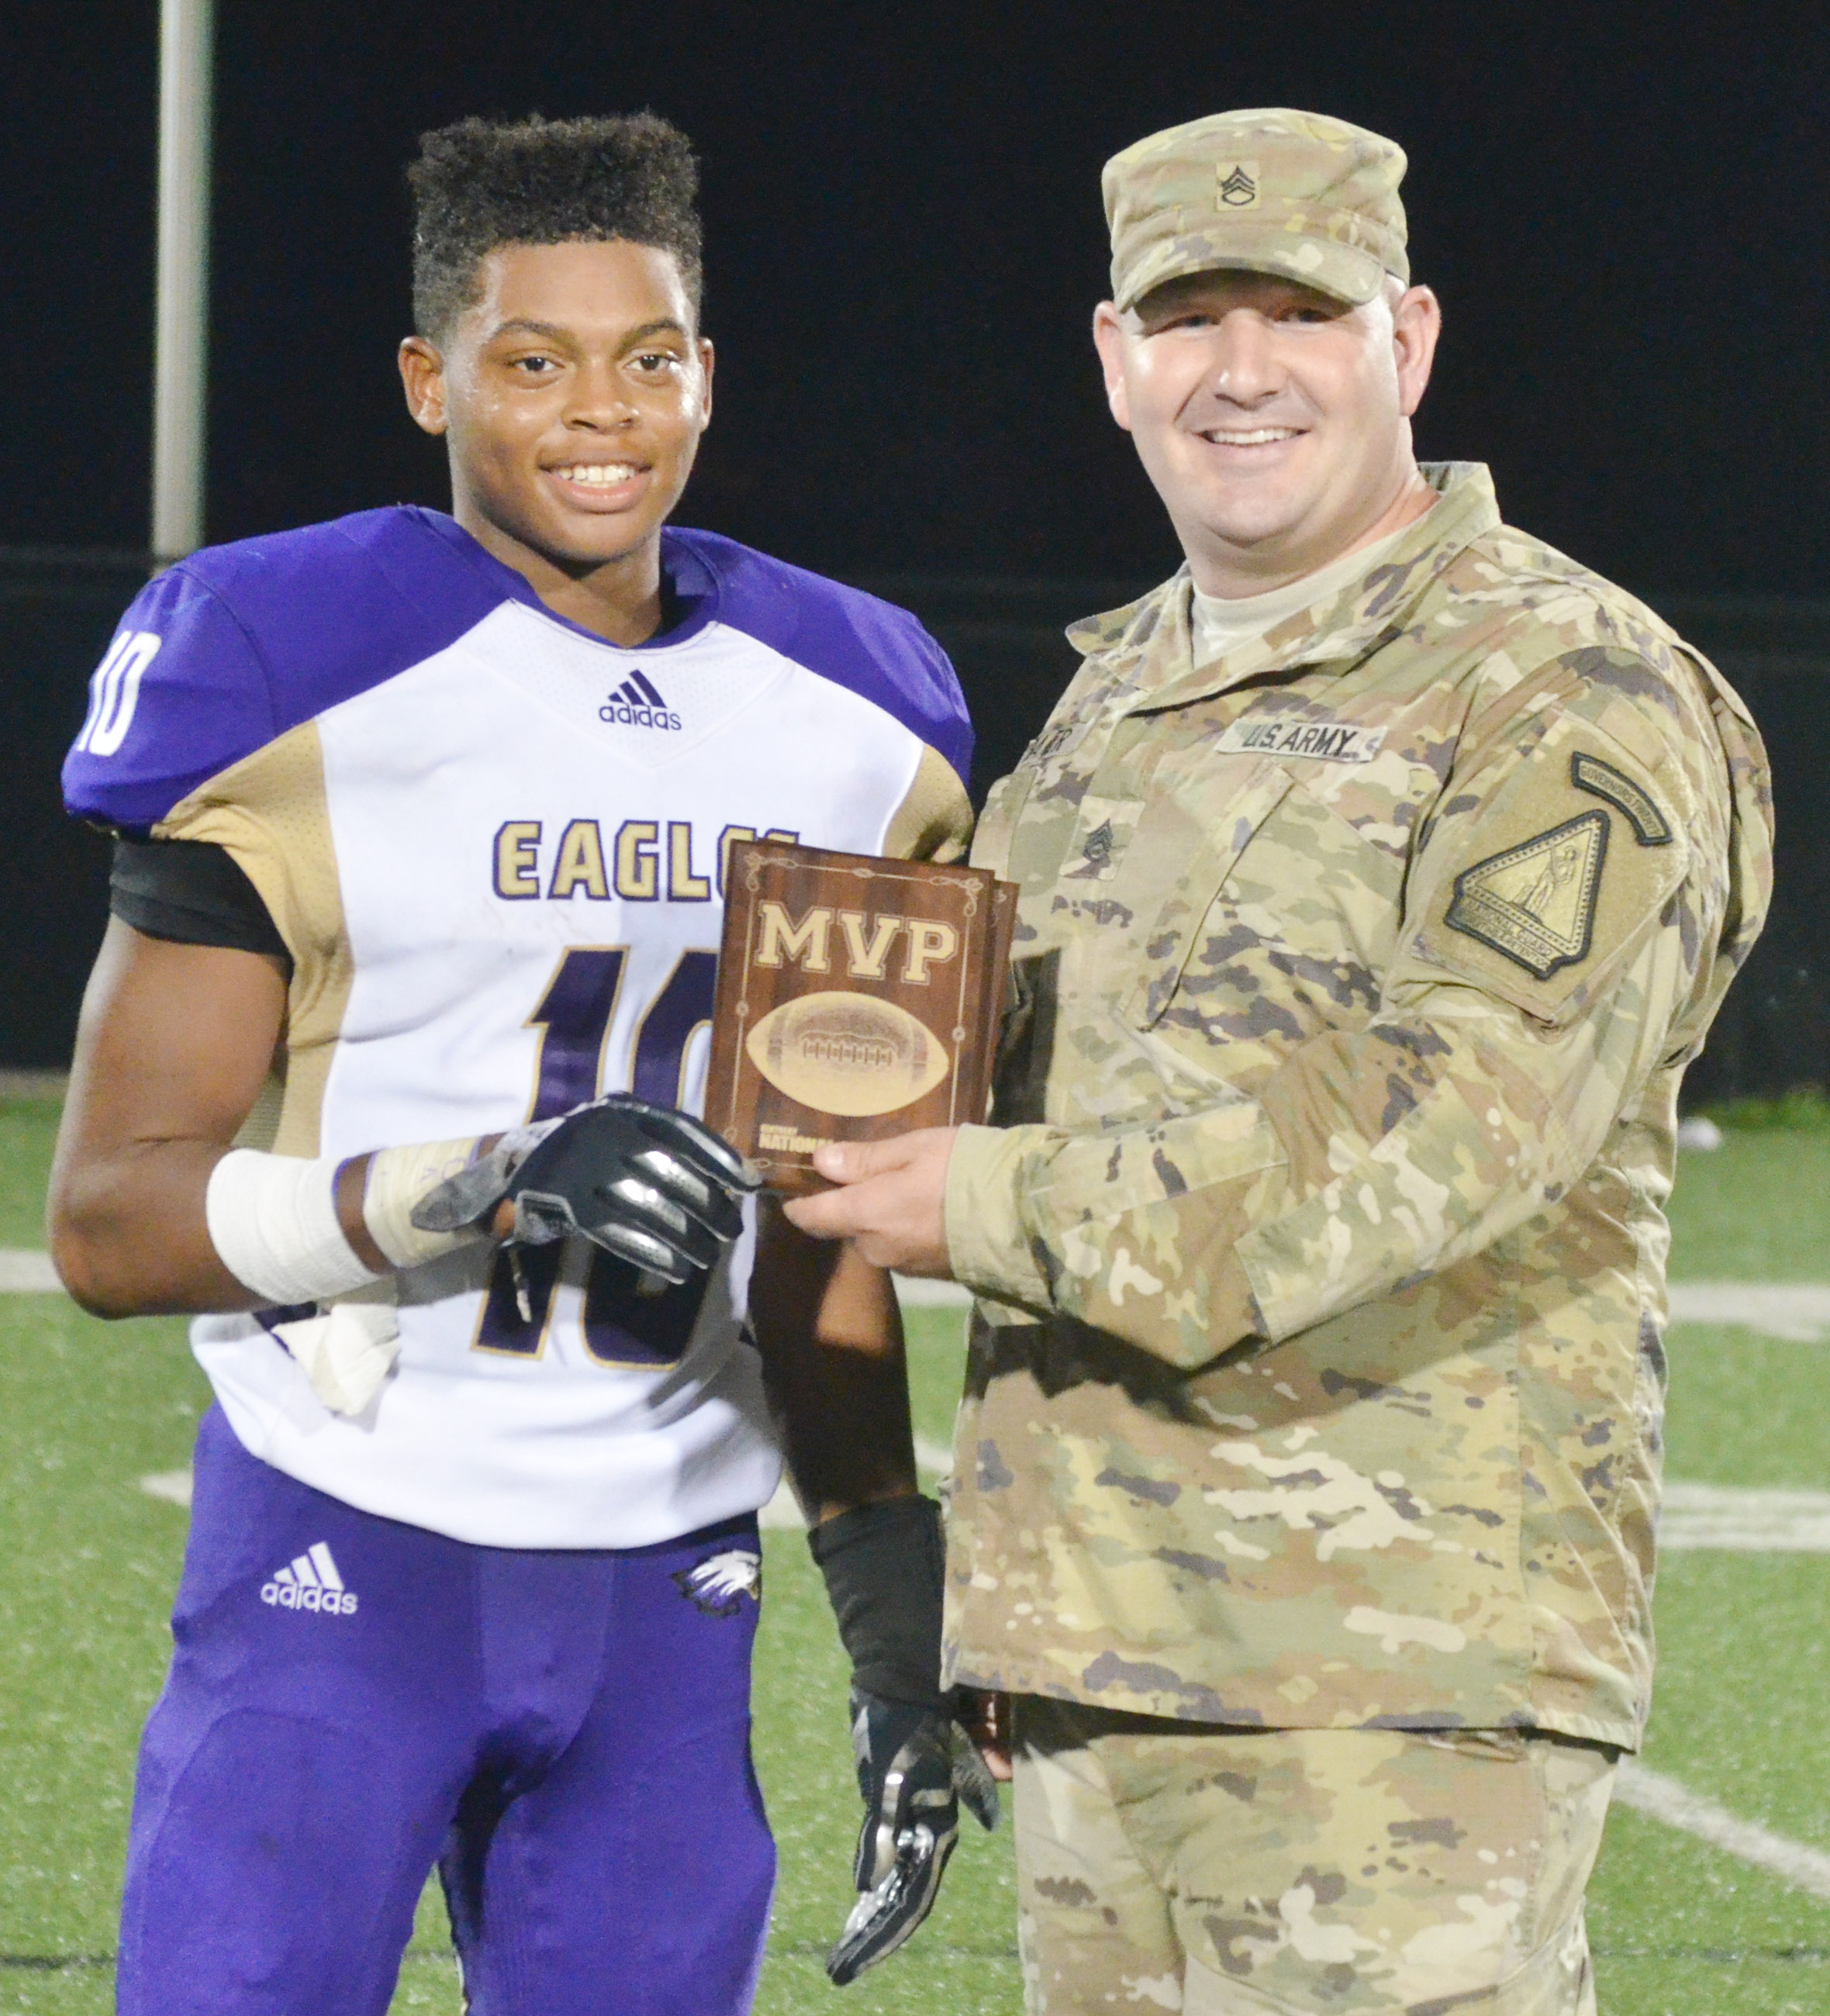 CHS senior Devonte Cubit receives the National Guard player of the game plaque from Staff Sgt. Phillip Baker.